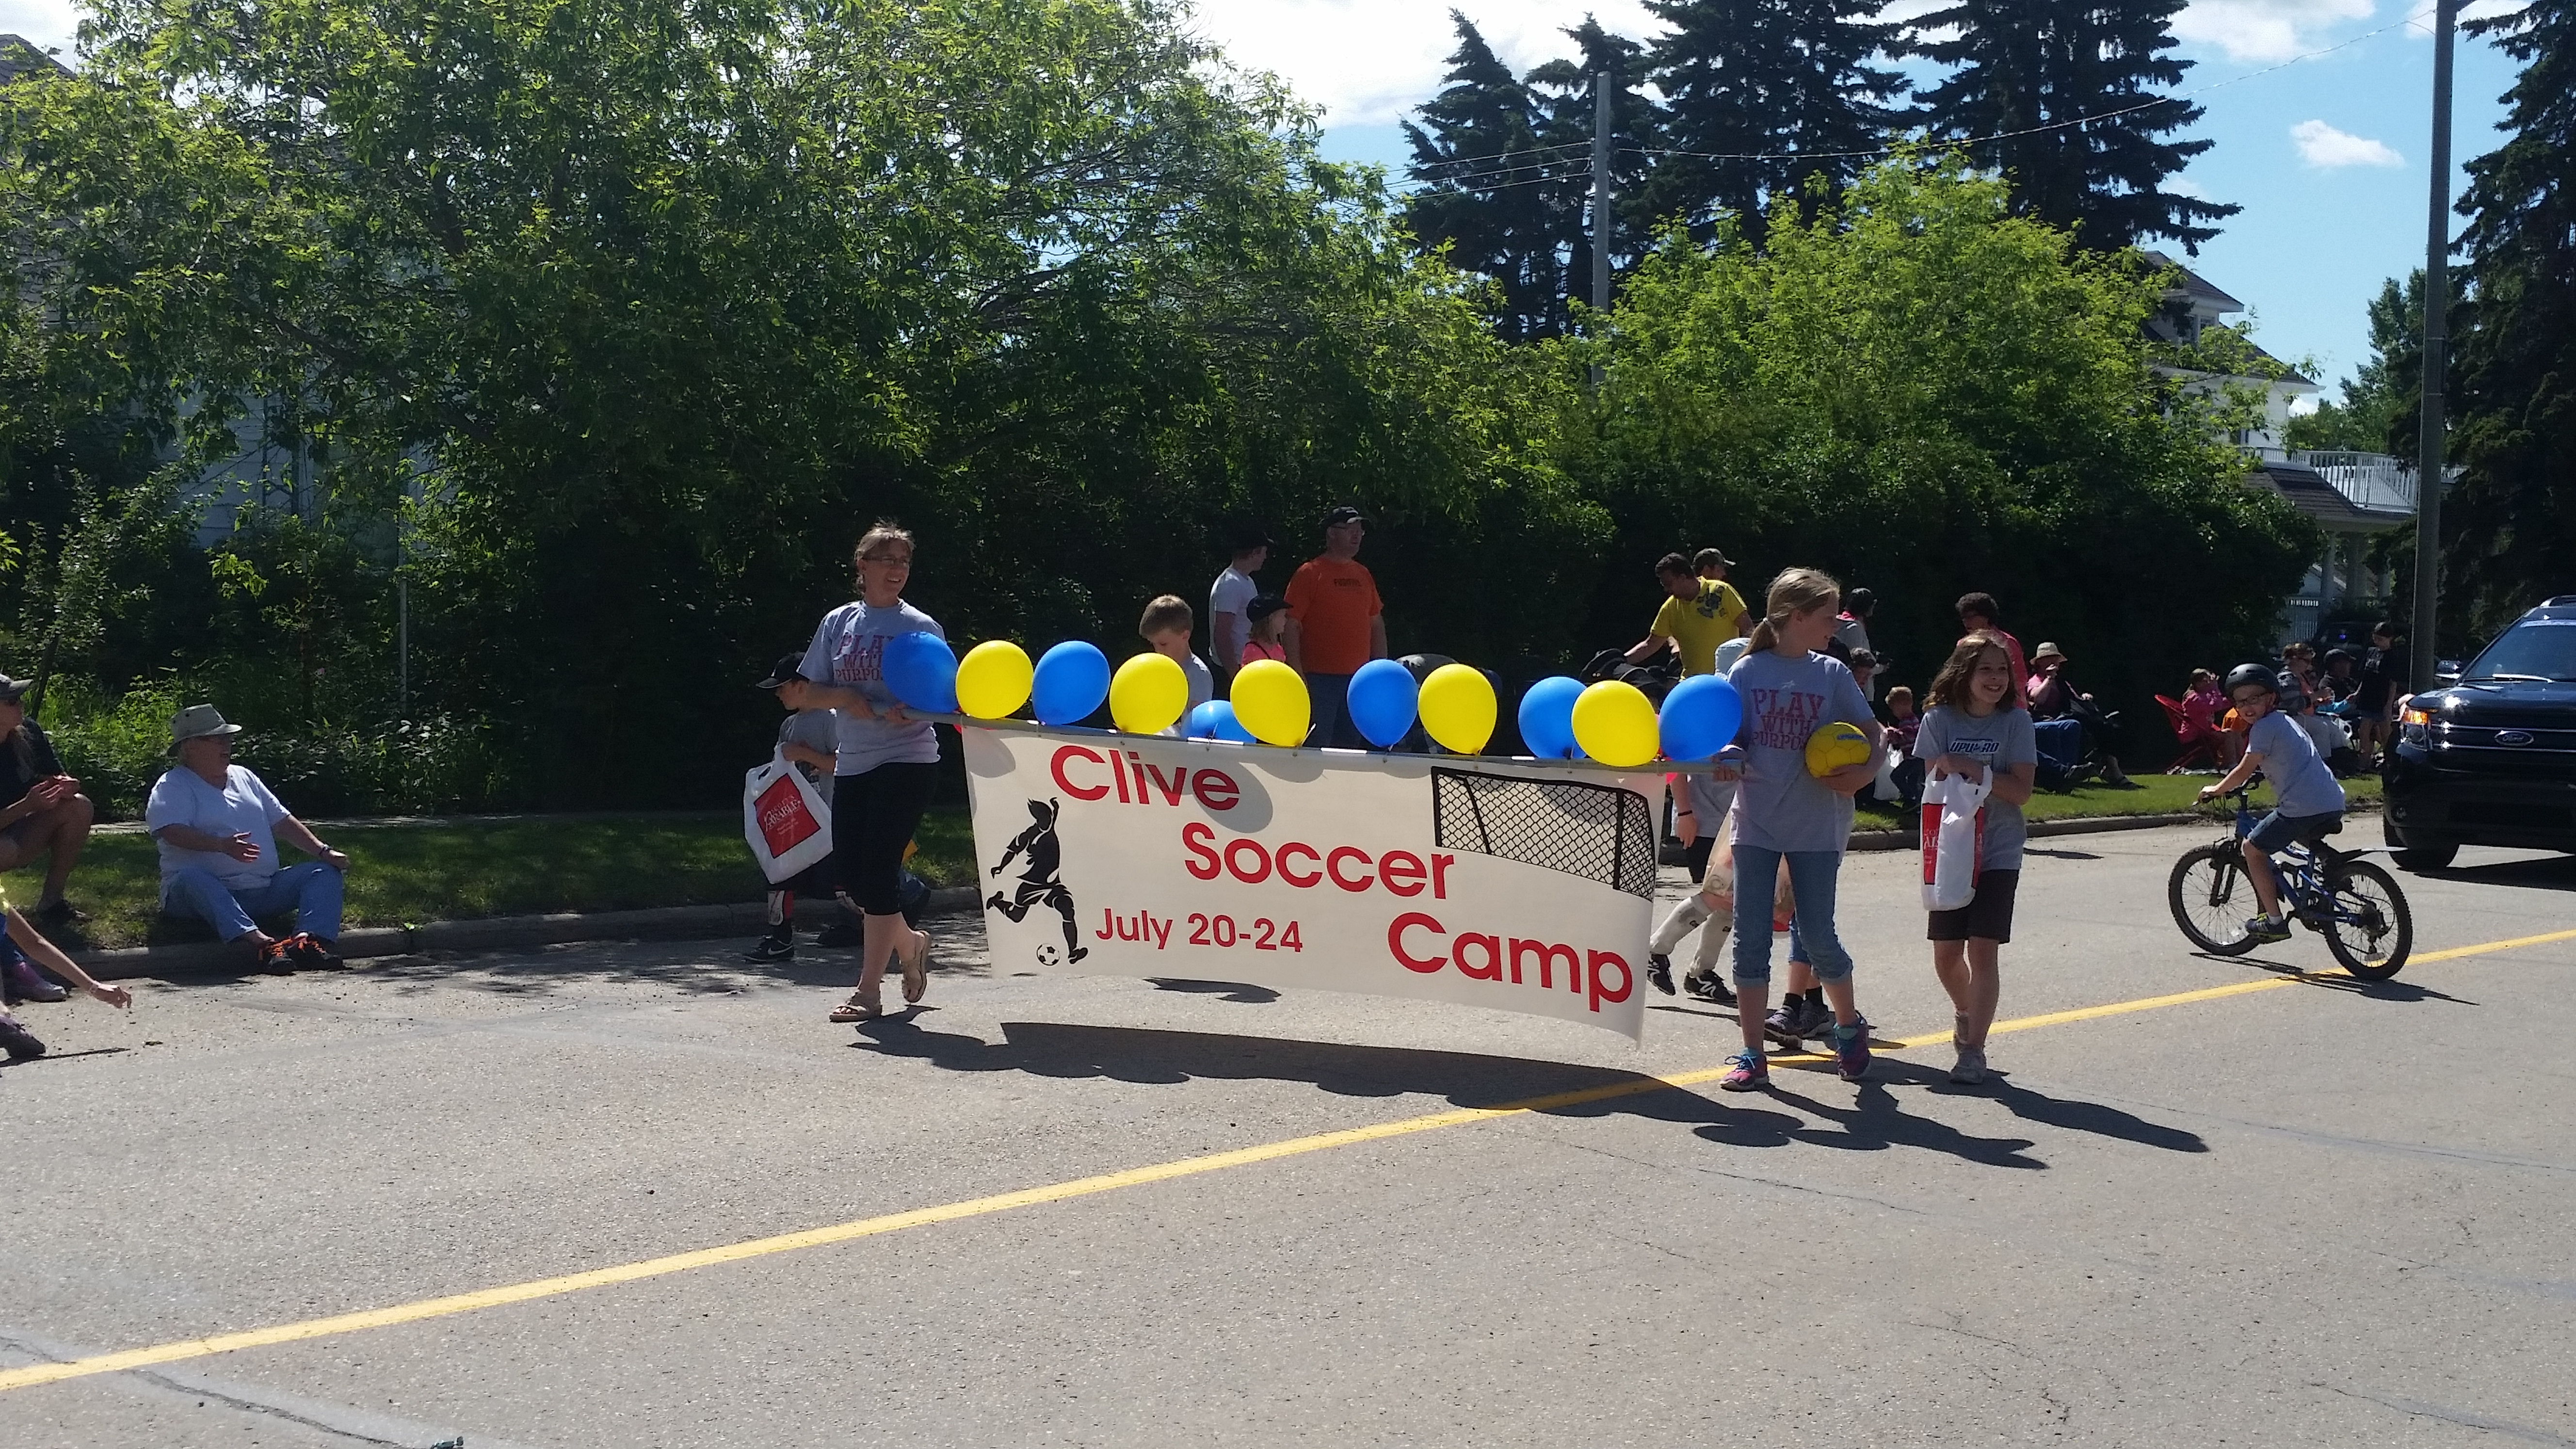 Clive Soccer in parade